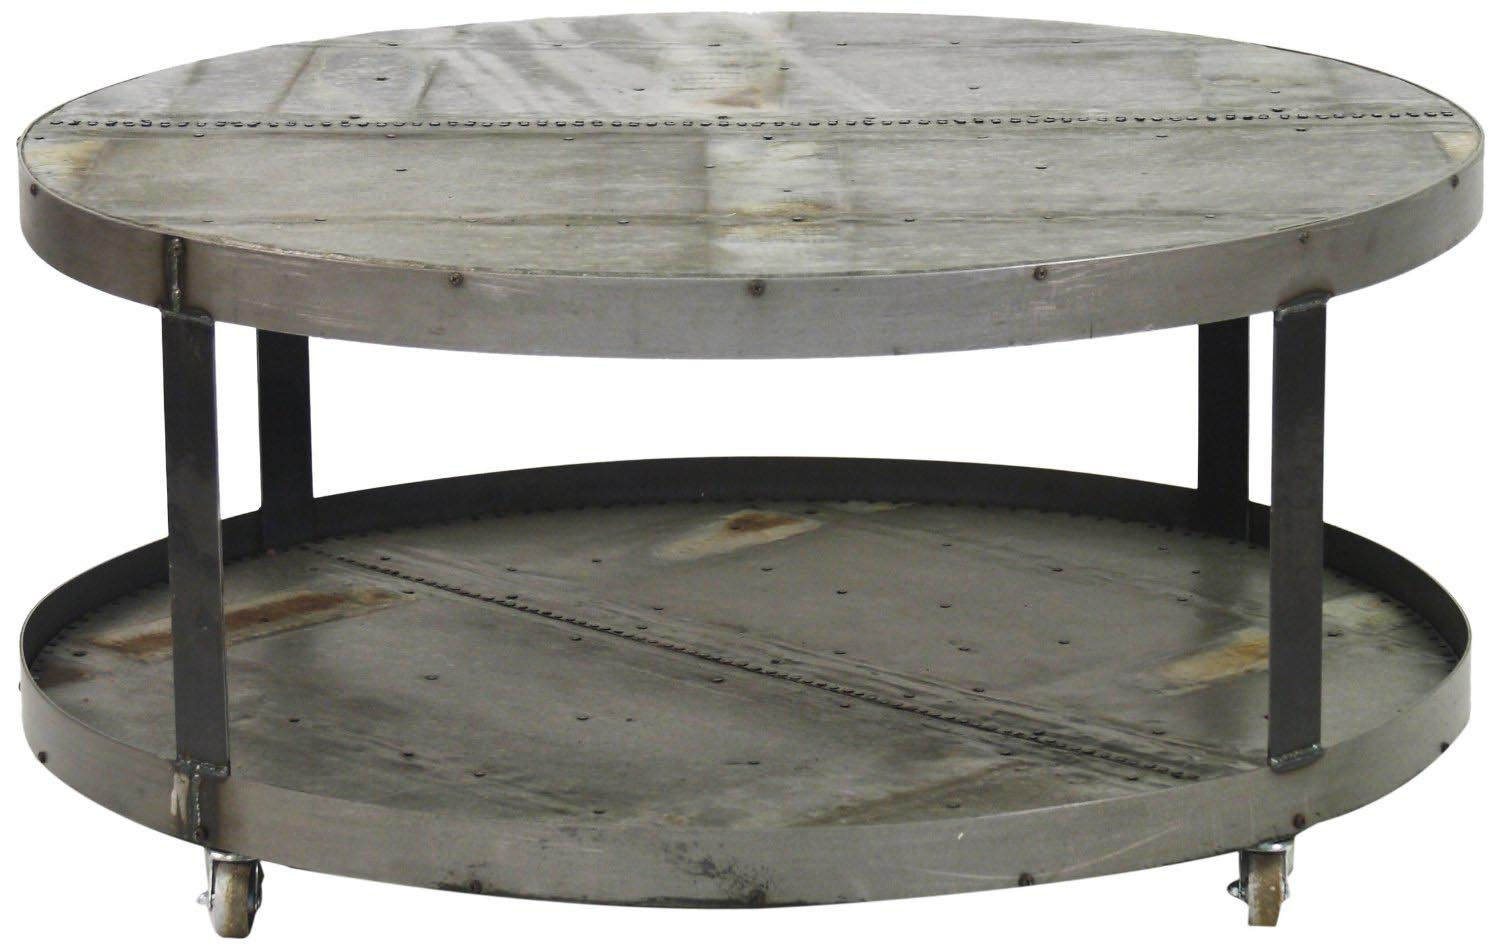 Charming Oversized Round Coffee Table